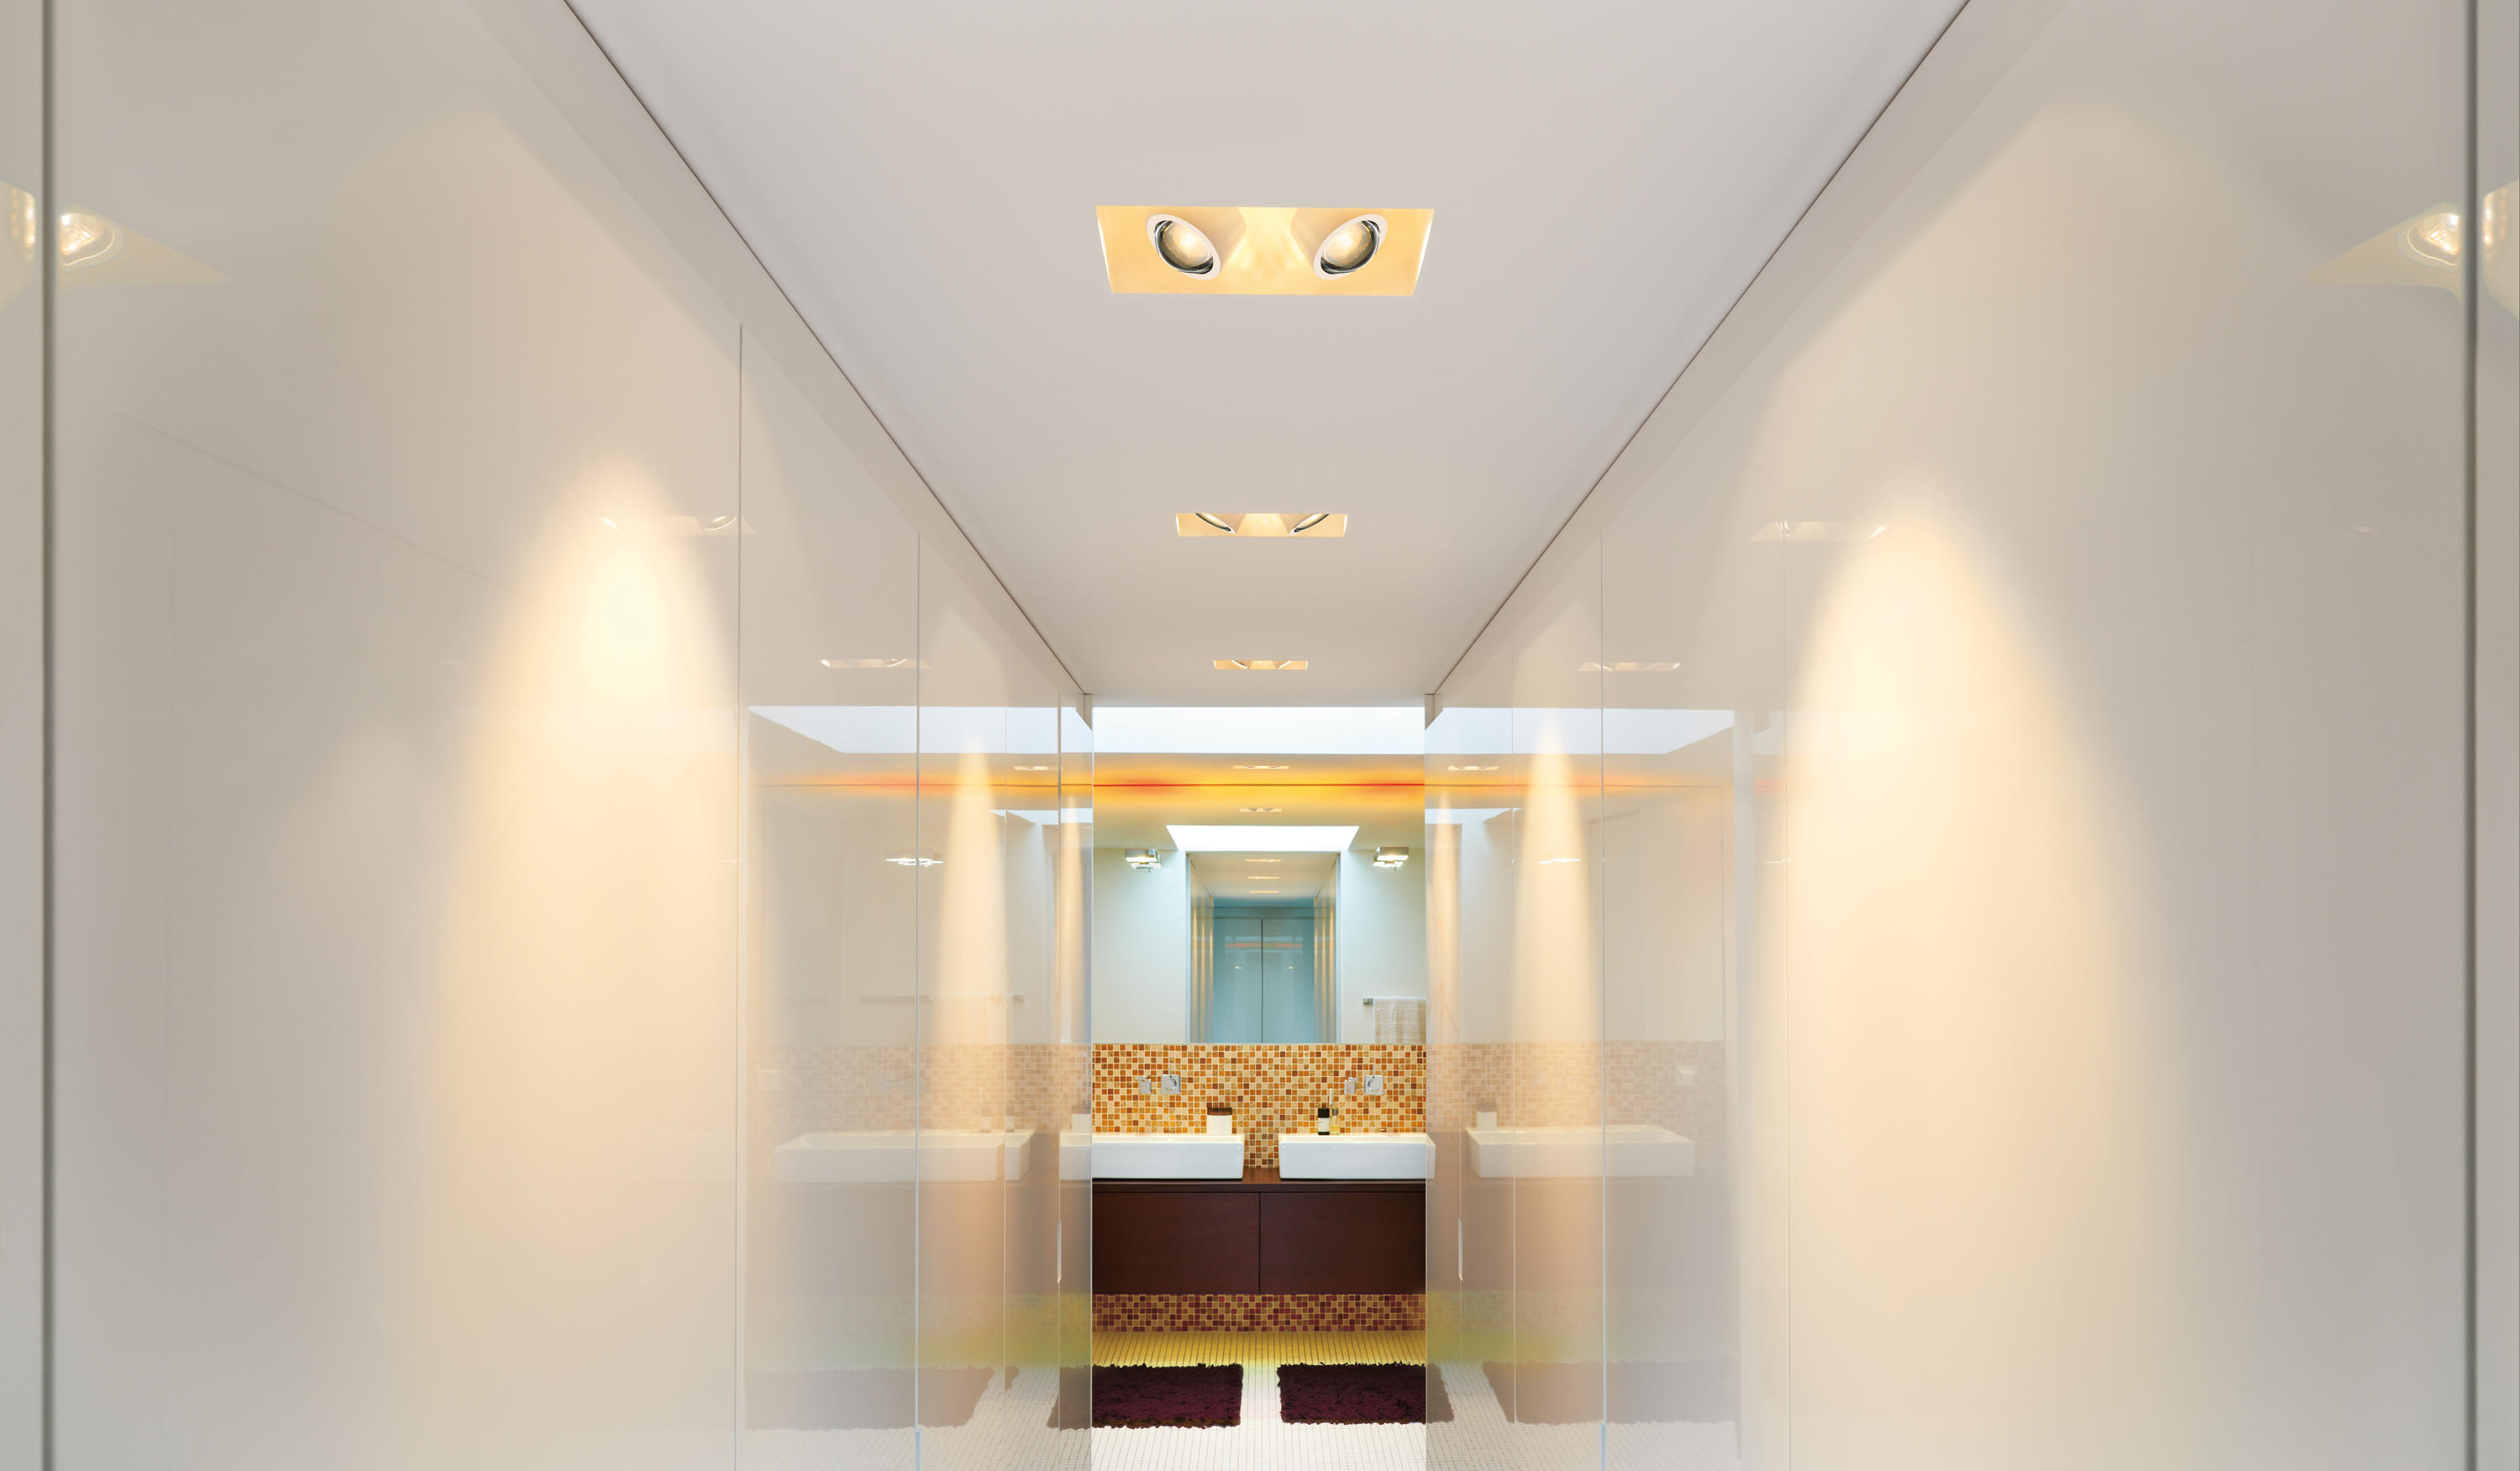 CRANNY SPOT LED MONO PD C - Ceiling lights from BRUCK | Architonic